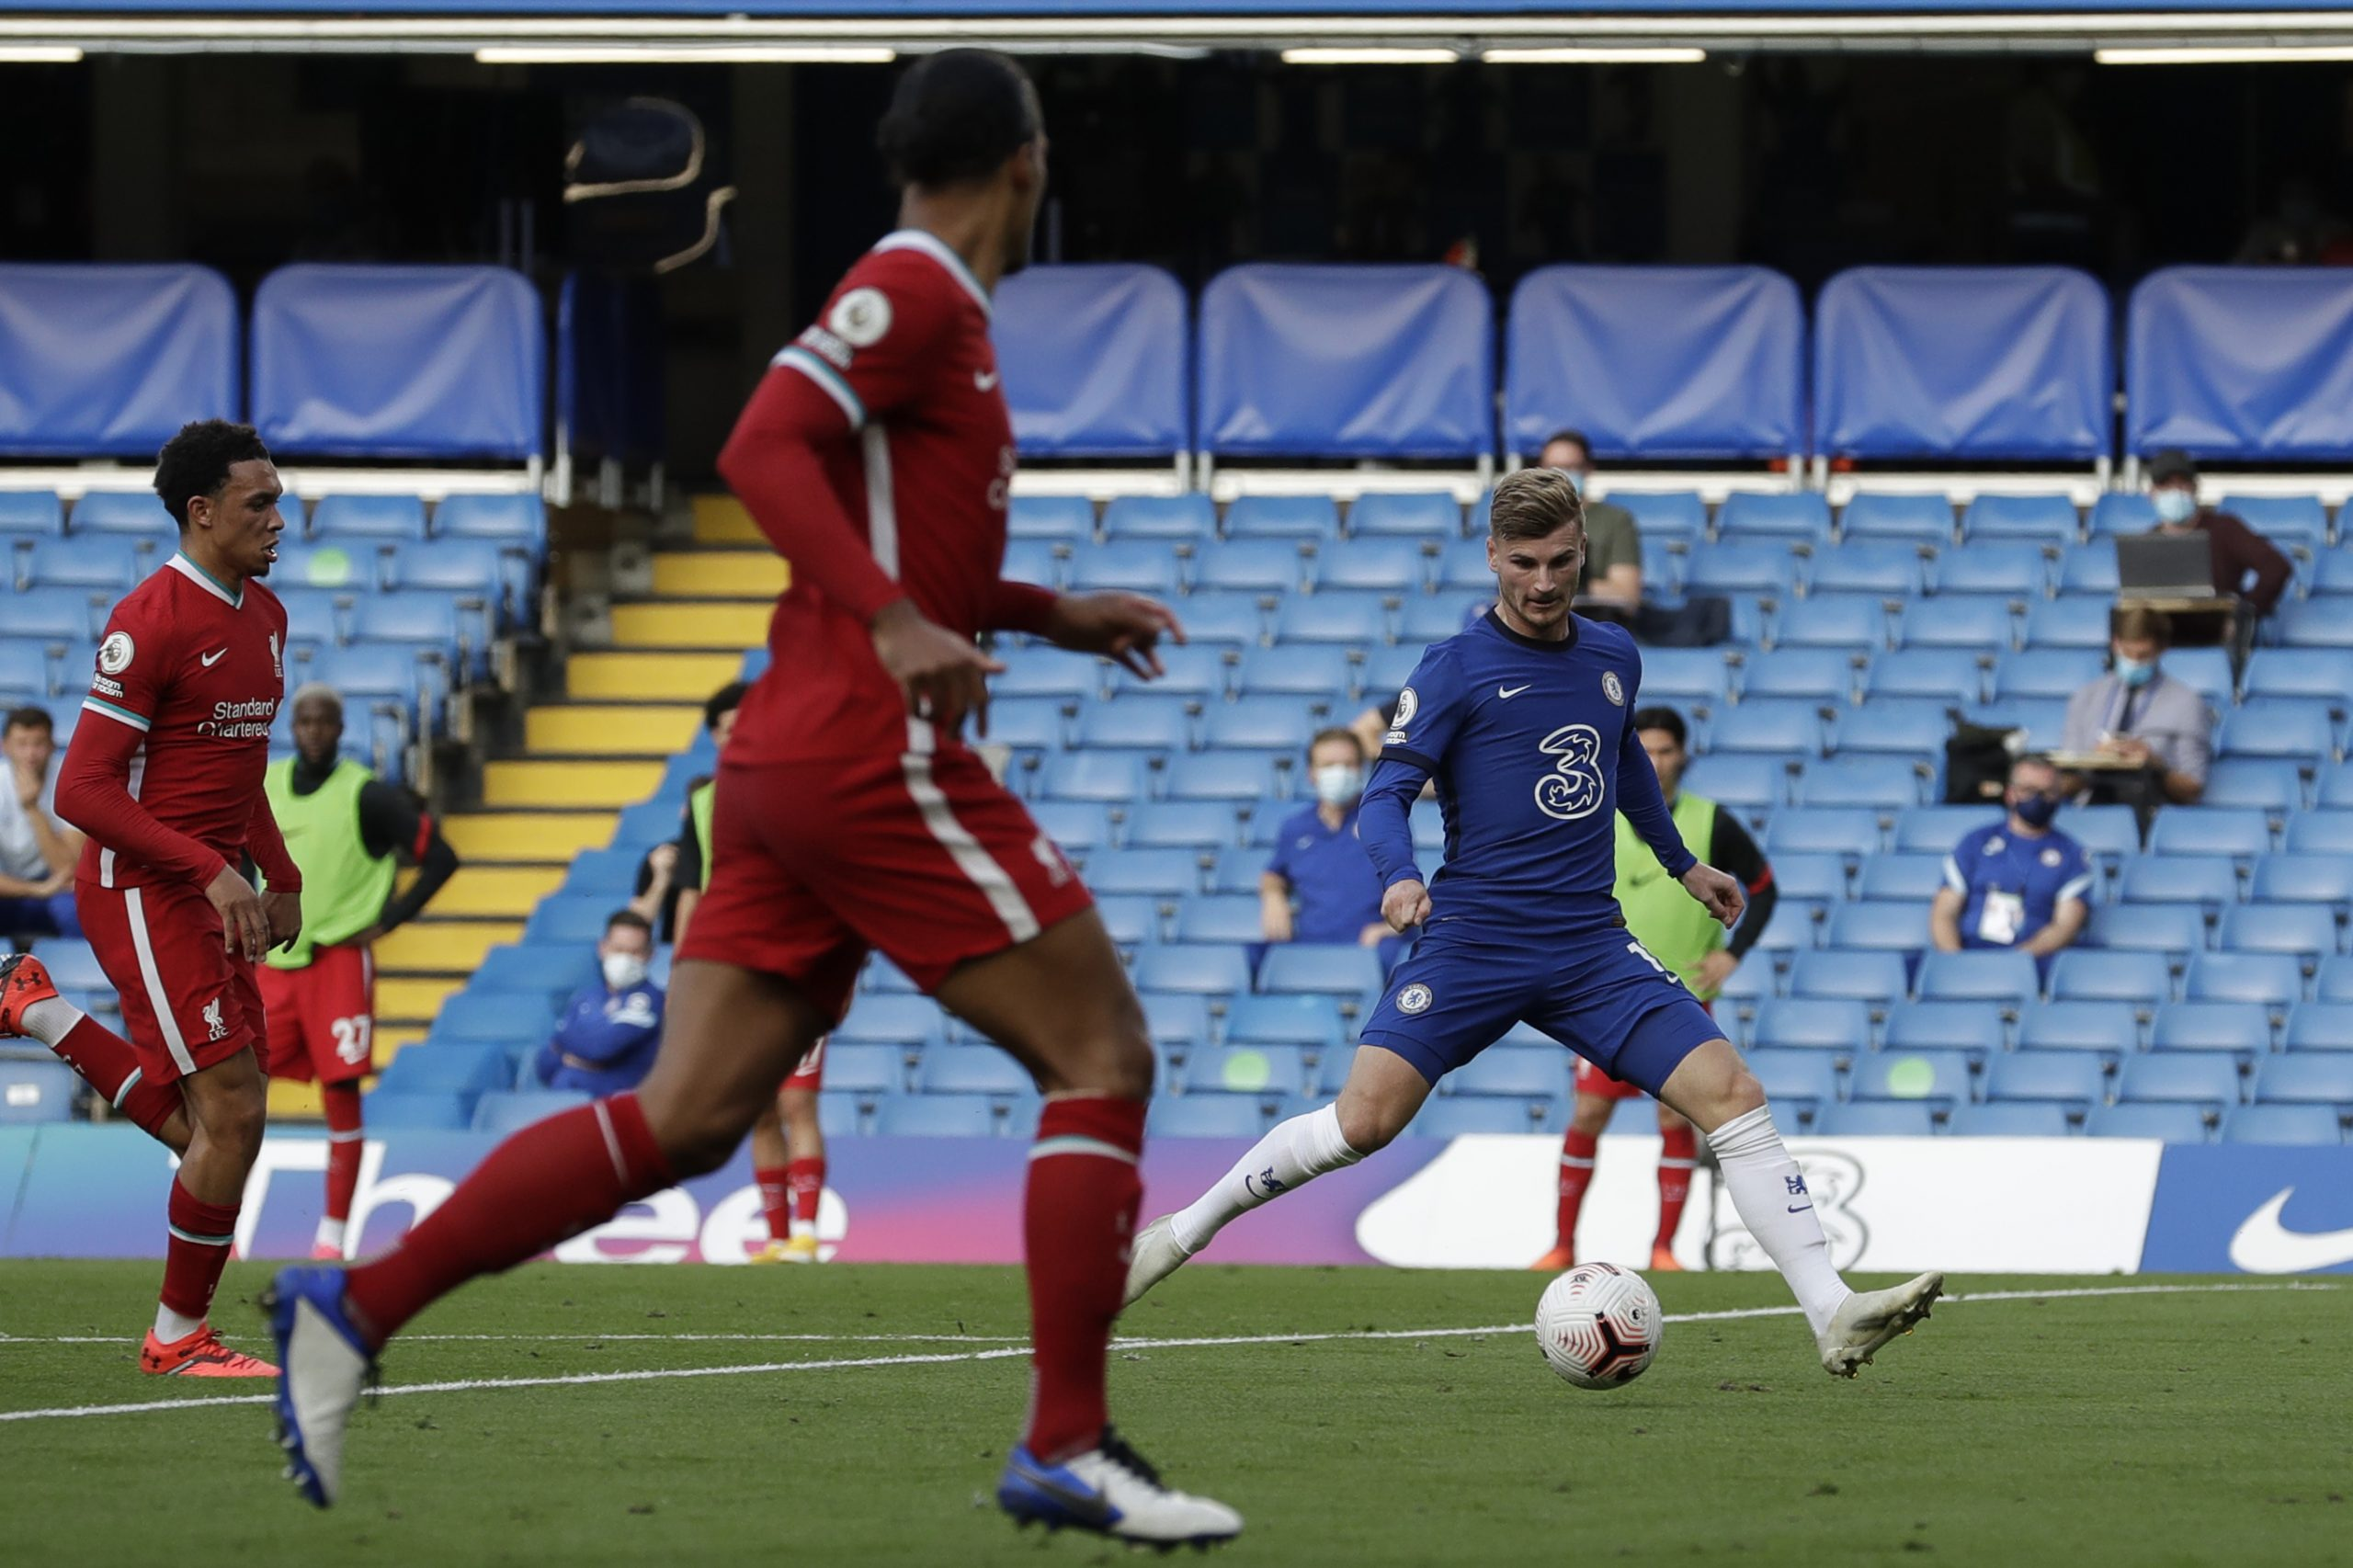 Timo Werner in action for Chelsea against Liverpool. (GETTY Images)